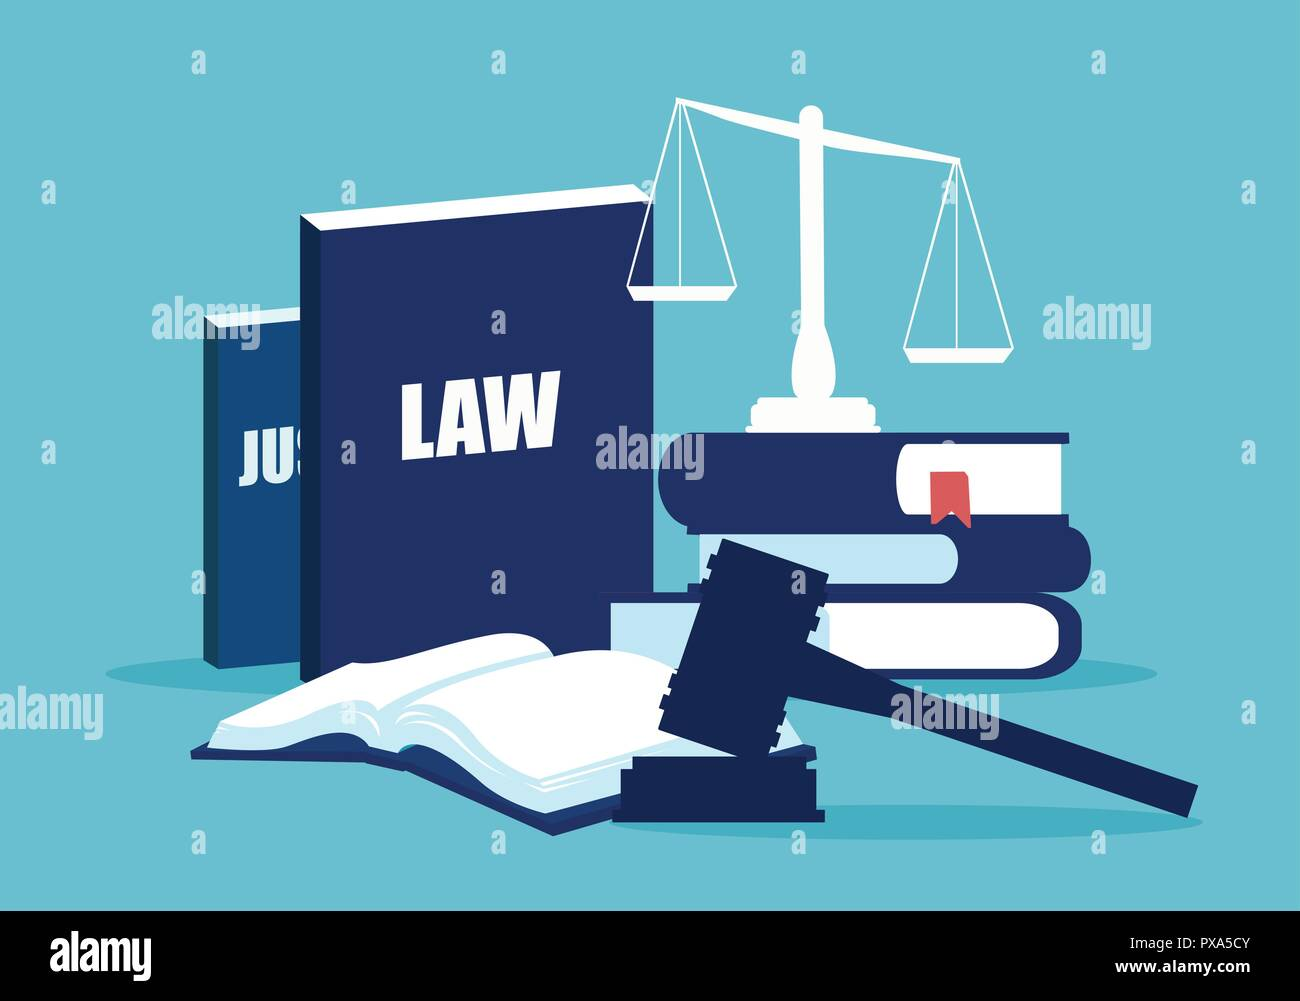 Simple design of legal system elements with books and scales on blue background Stock Vector